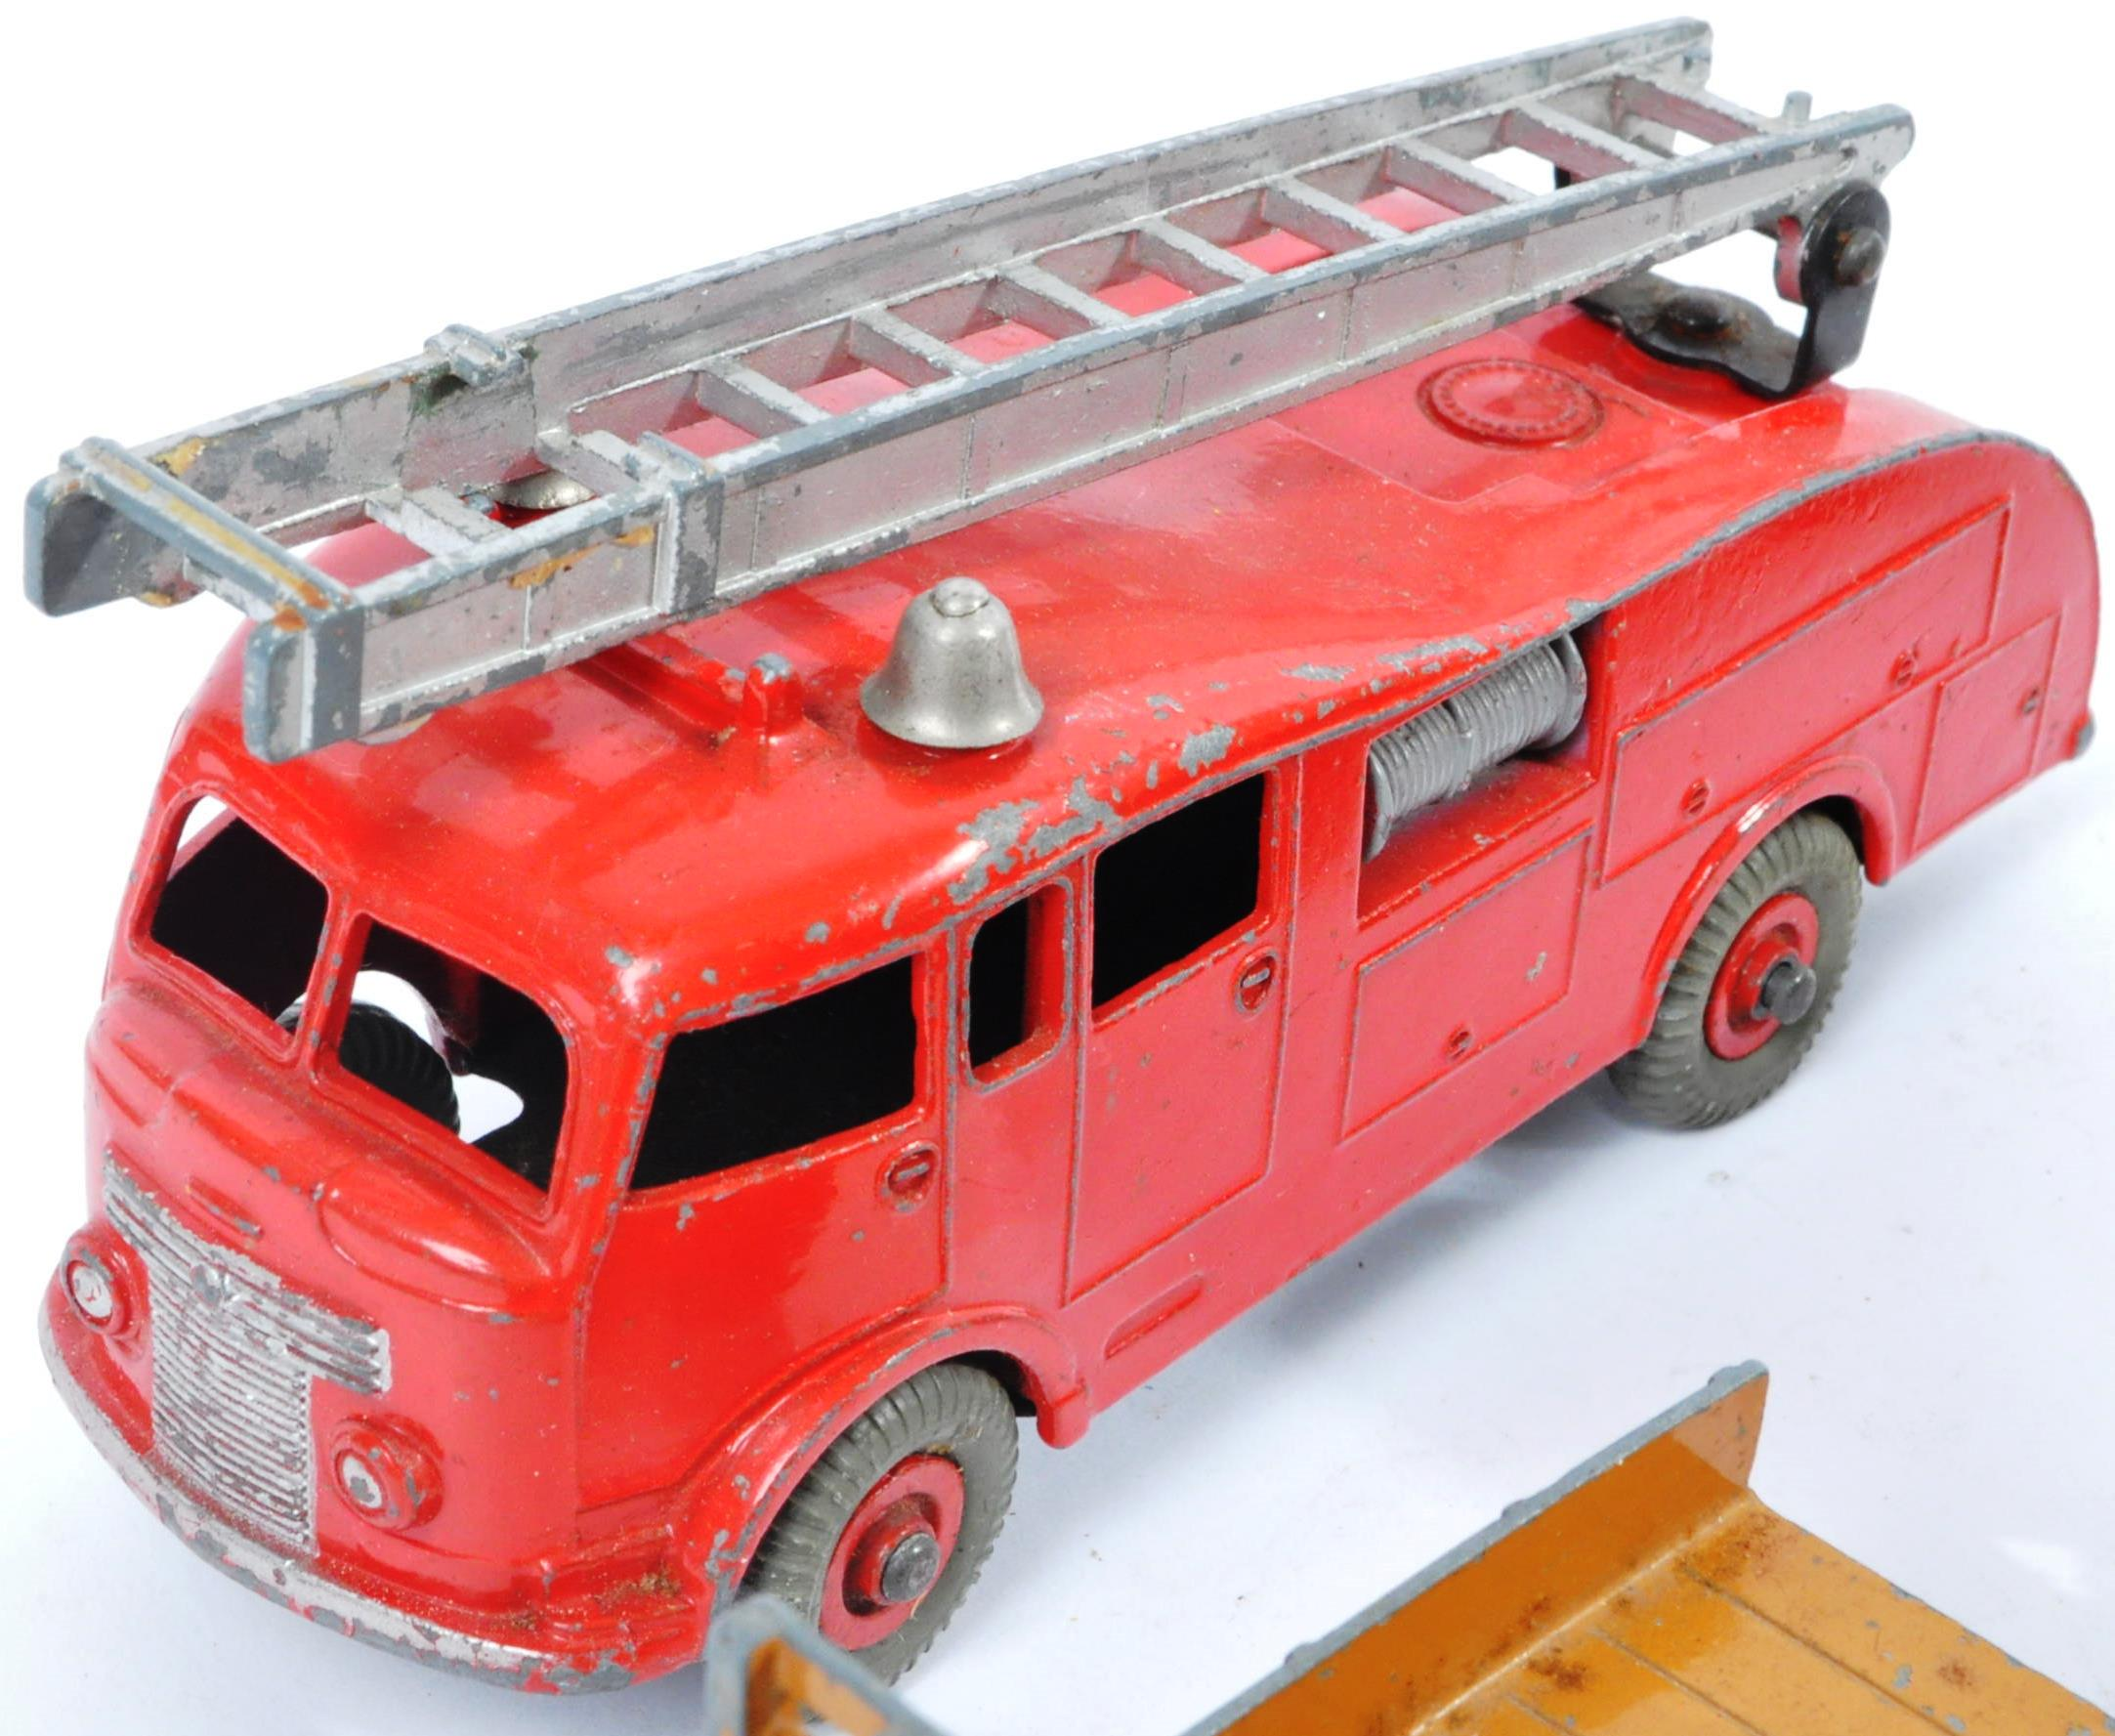 COLLECTION OF X10 VINTAGE DINKY TOYS DIECAST MODEL TRUCKS - Image 11 of 14